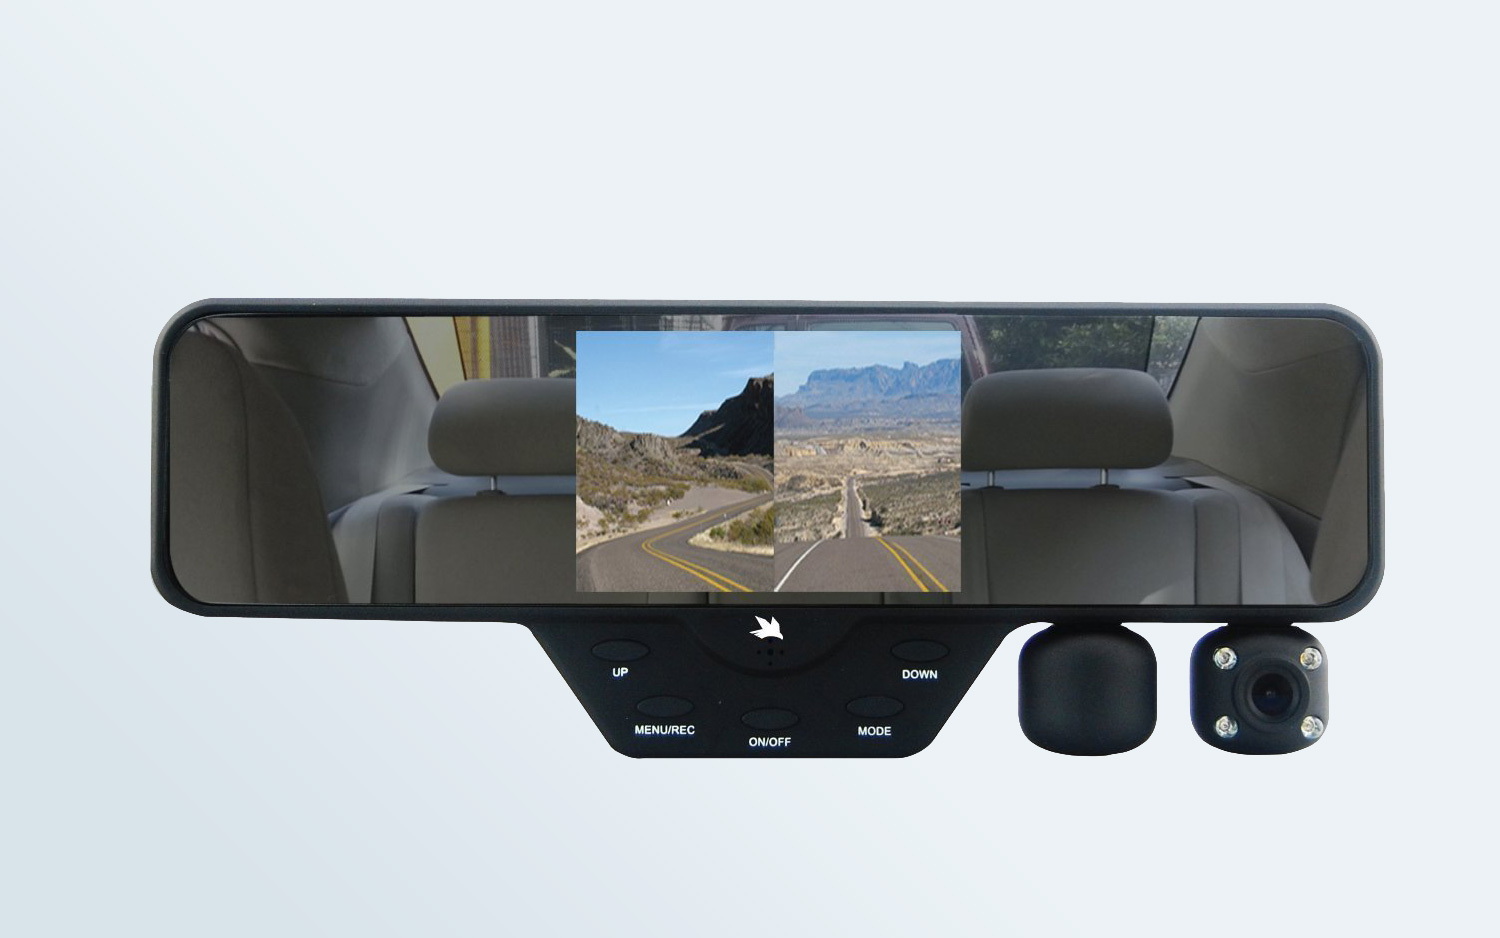 Best Dash Cams of 2019 - Reviews of HD Dashboard Cameras